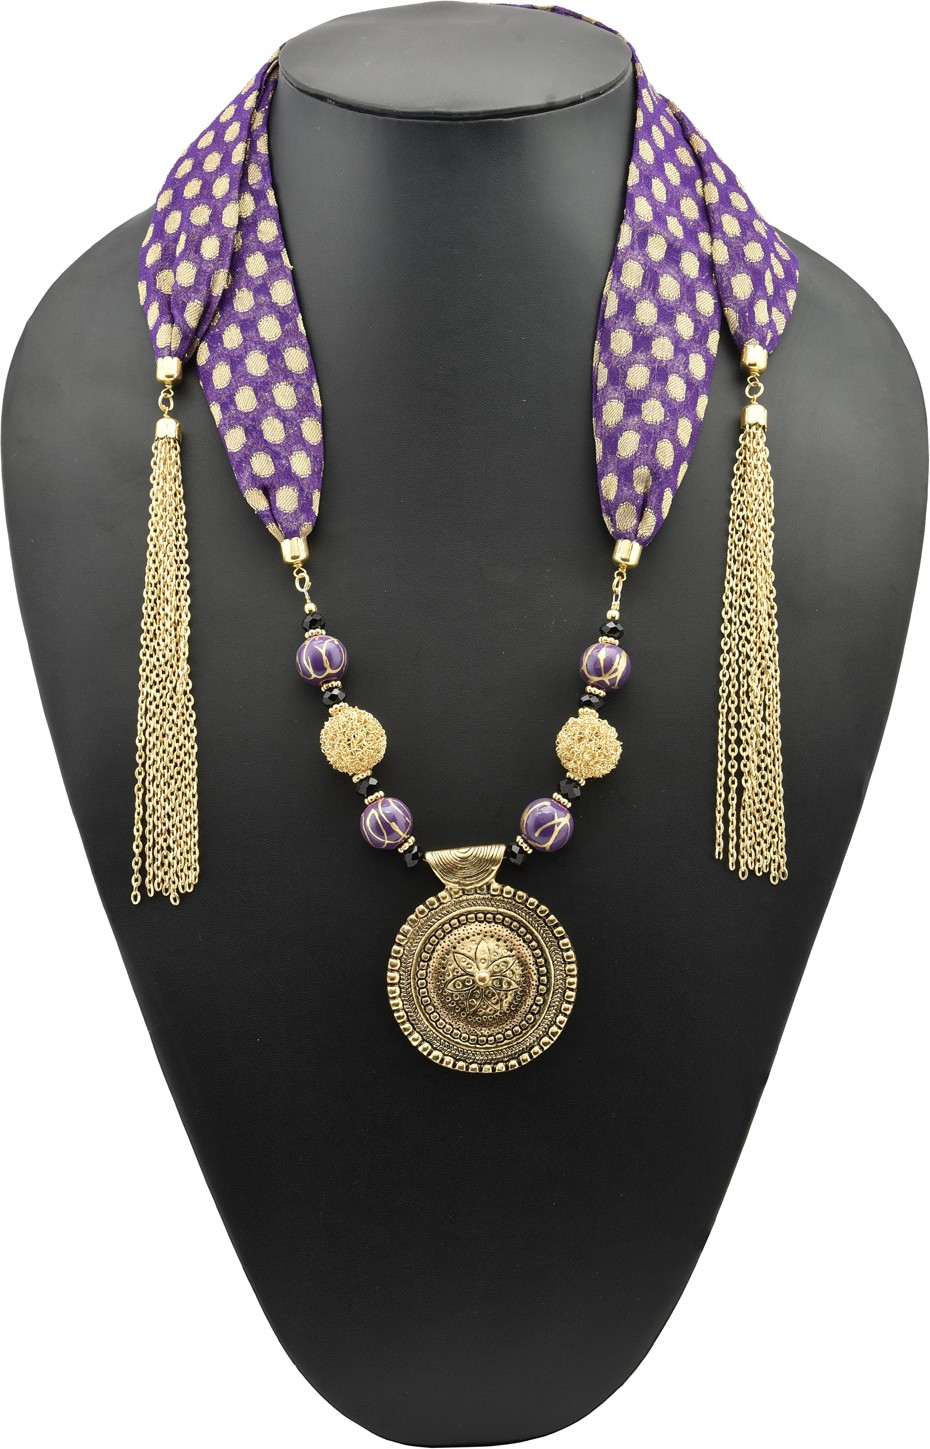 Deals - Delhi - Fabric Jewellery <br> Necklaces, Earrings and more<br> Category - jewellery<br> Business - Flipkart.com